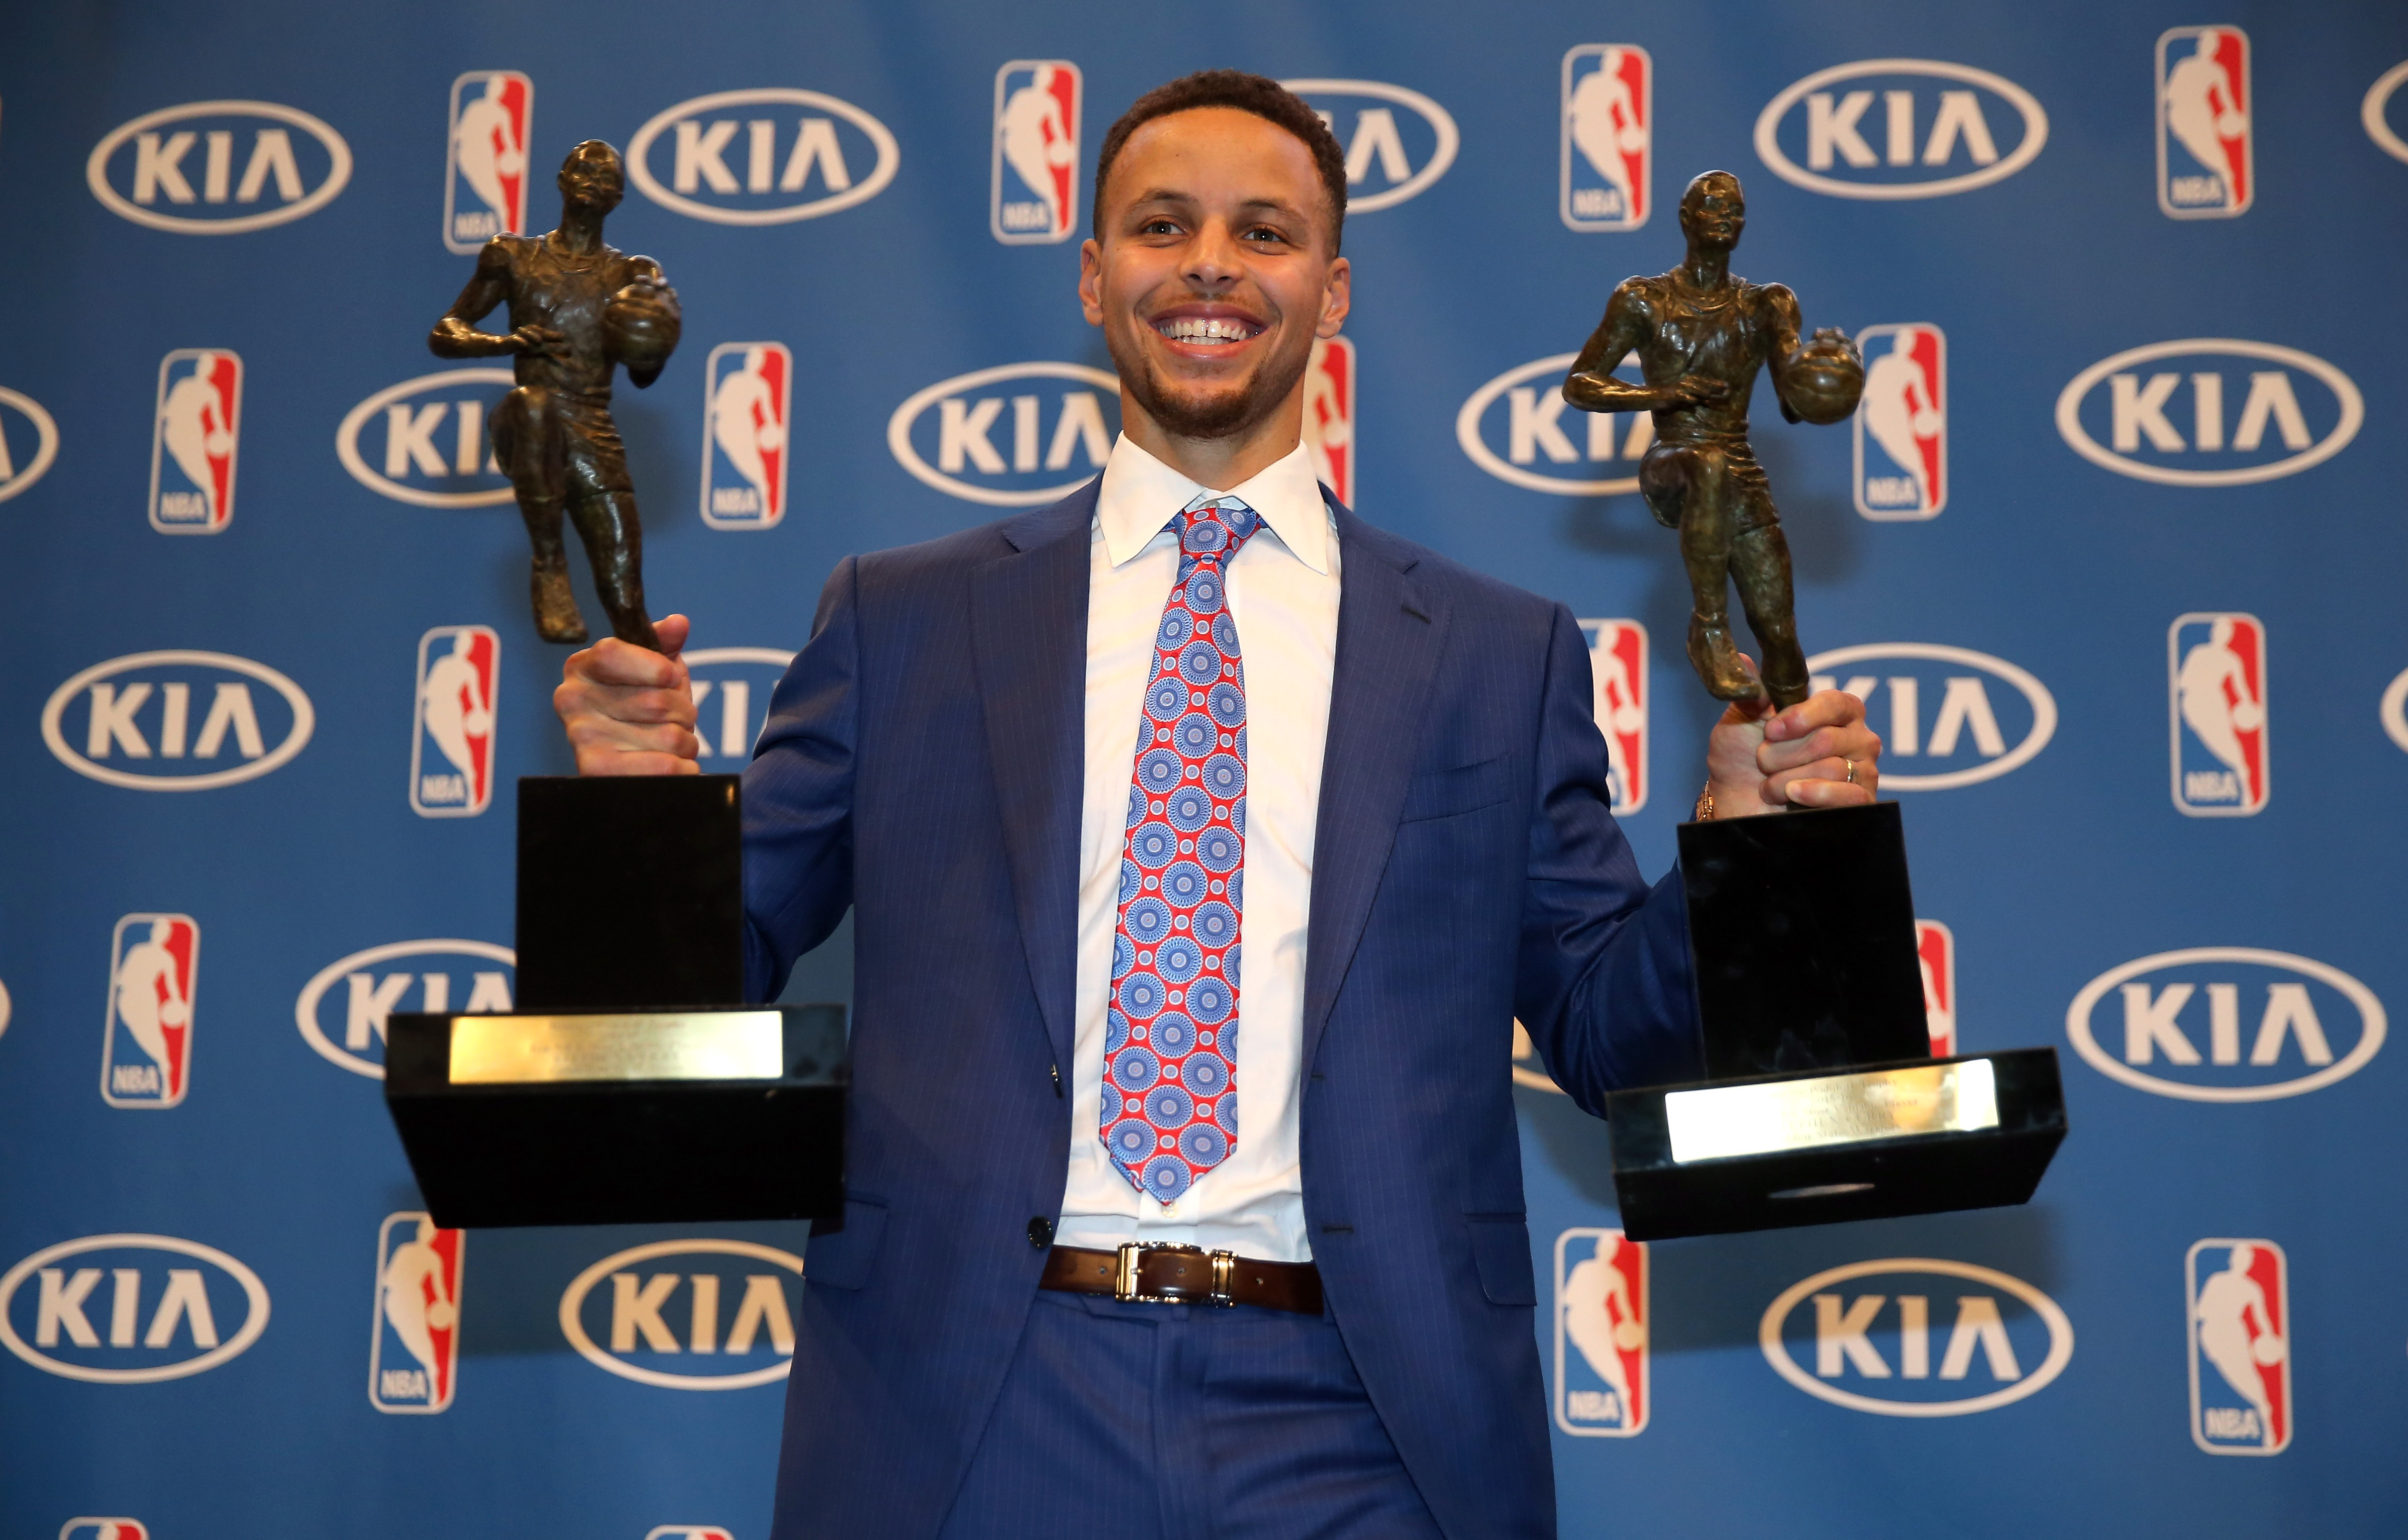 Stephen Curry Of The Warriors Had The Best NBA Season Ever | Time